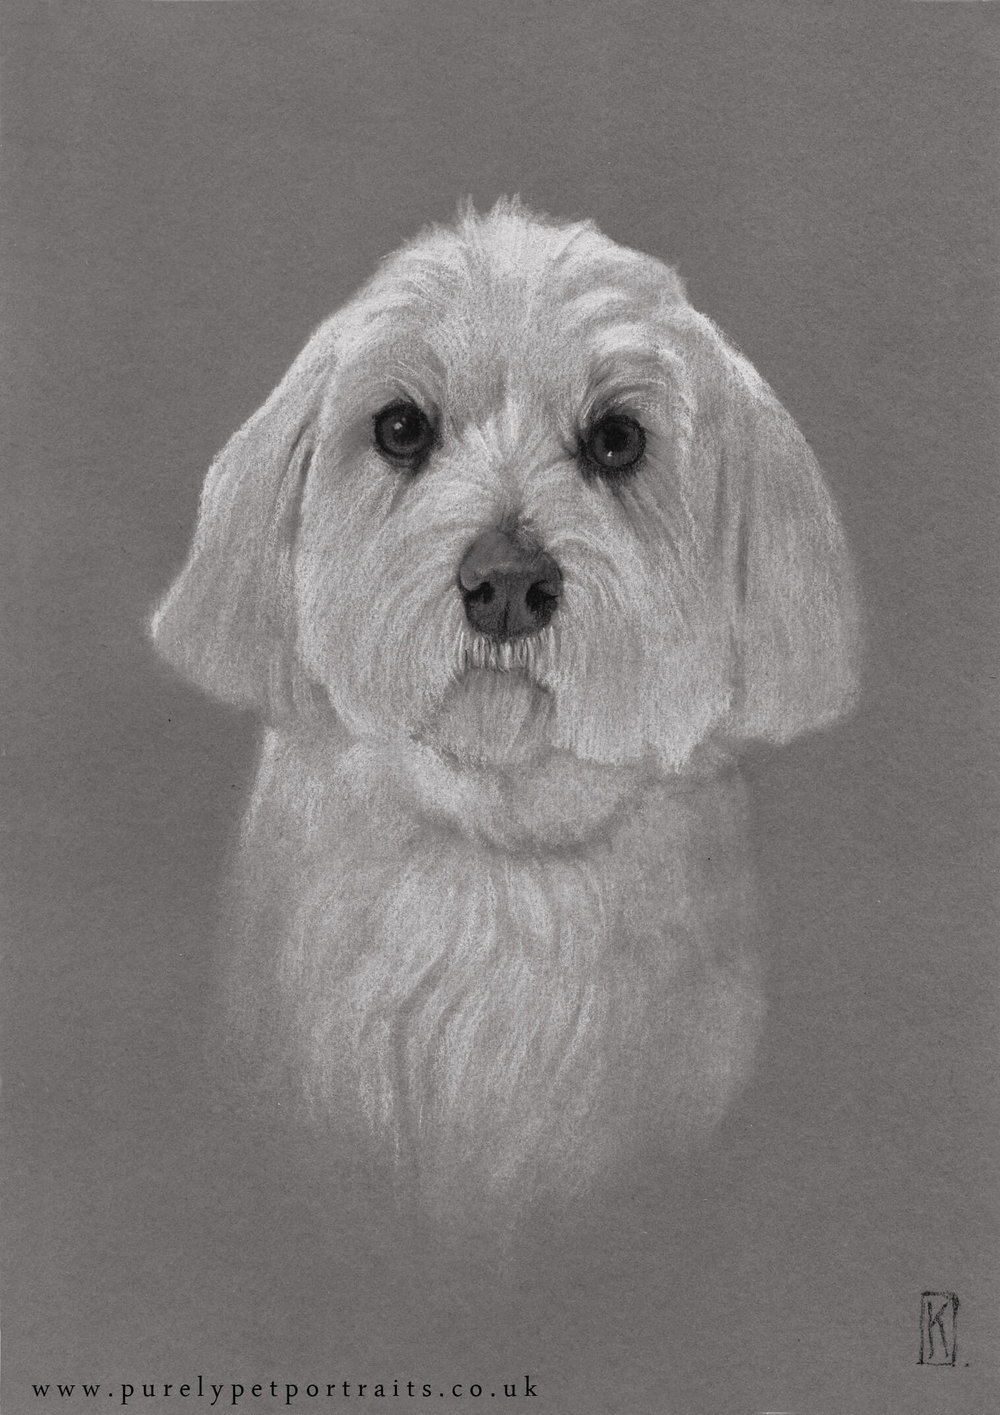 Portrait of Daisy by www.purelypetportraits.co.uk